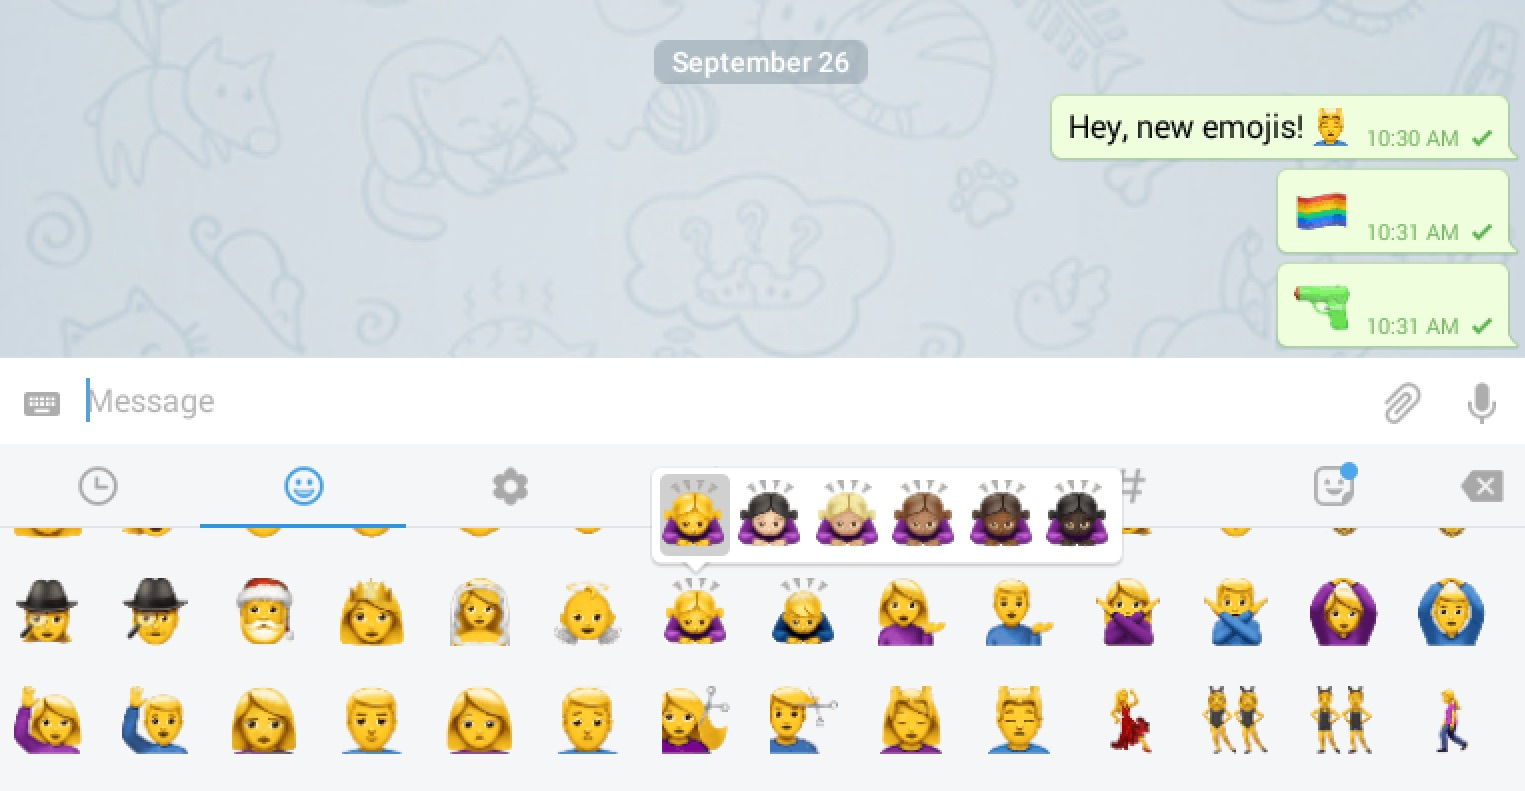 Telegram allows custom stickers to be uploaded and assigned to certain emojis stickers can be assigned a relevant emoji to apear as an emoji tooltip